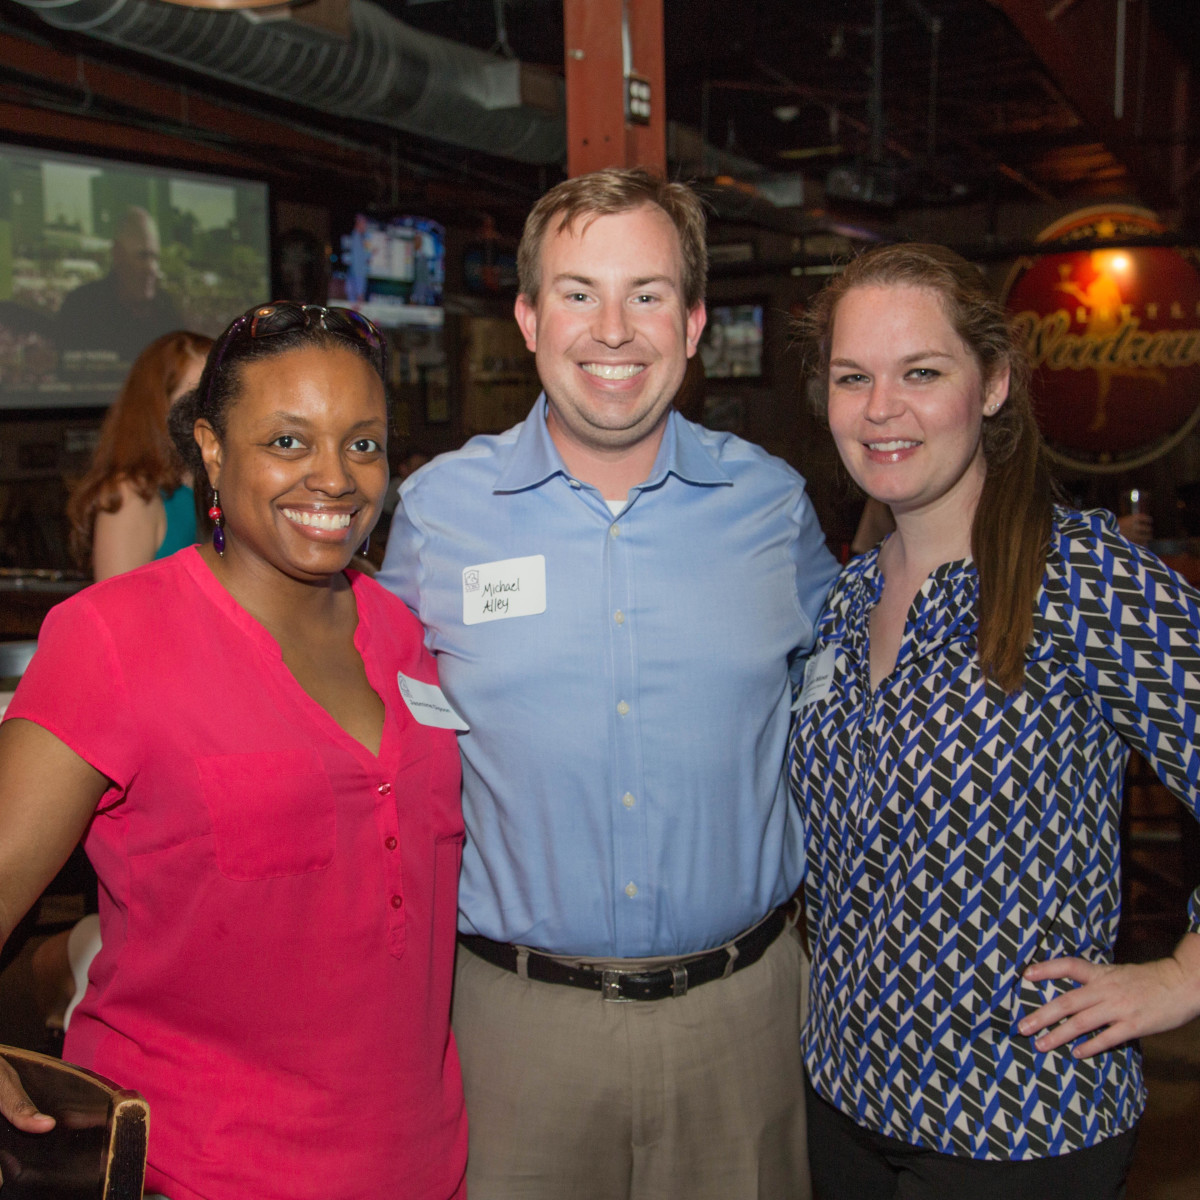 Casa de Esperanza YP event 6/16 Jasmine Gipson, Michael Alley, Laura Minor